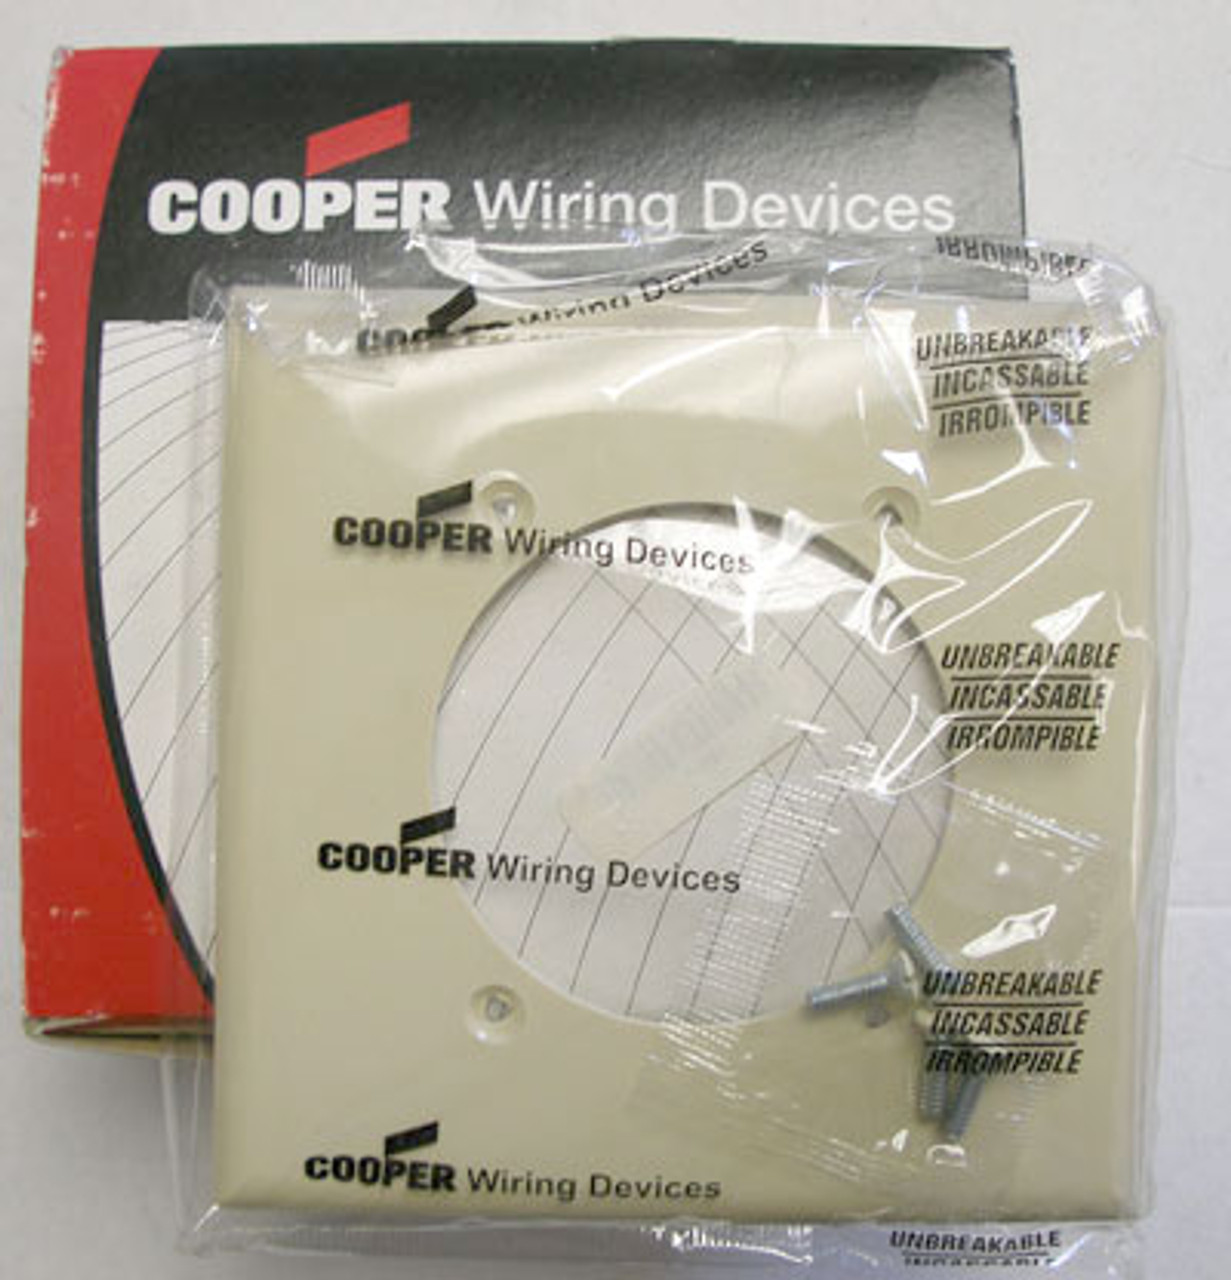 Cooper 5169V Ivory 2 Gang 4 Wire Wallplate (Lot of 10) - New